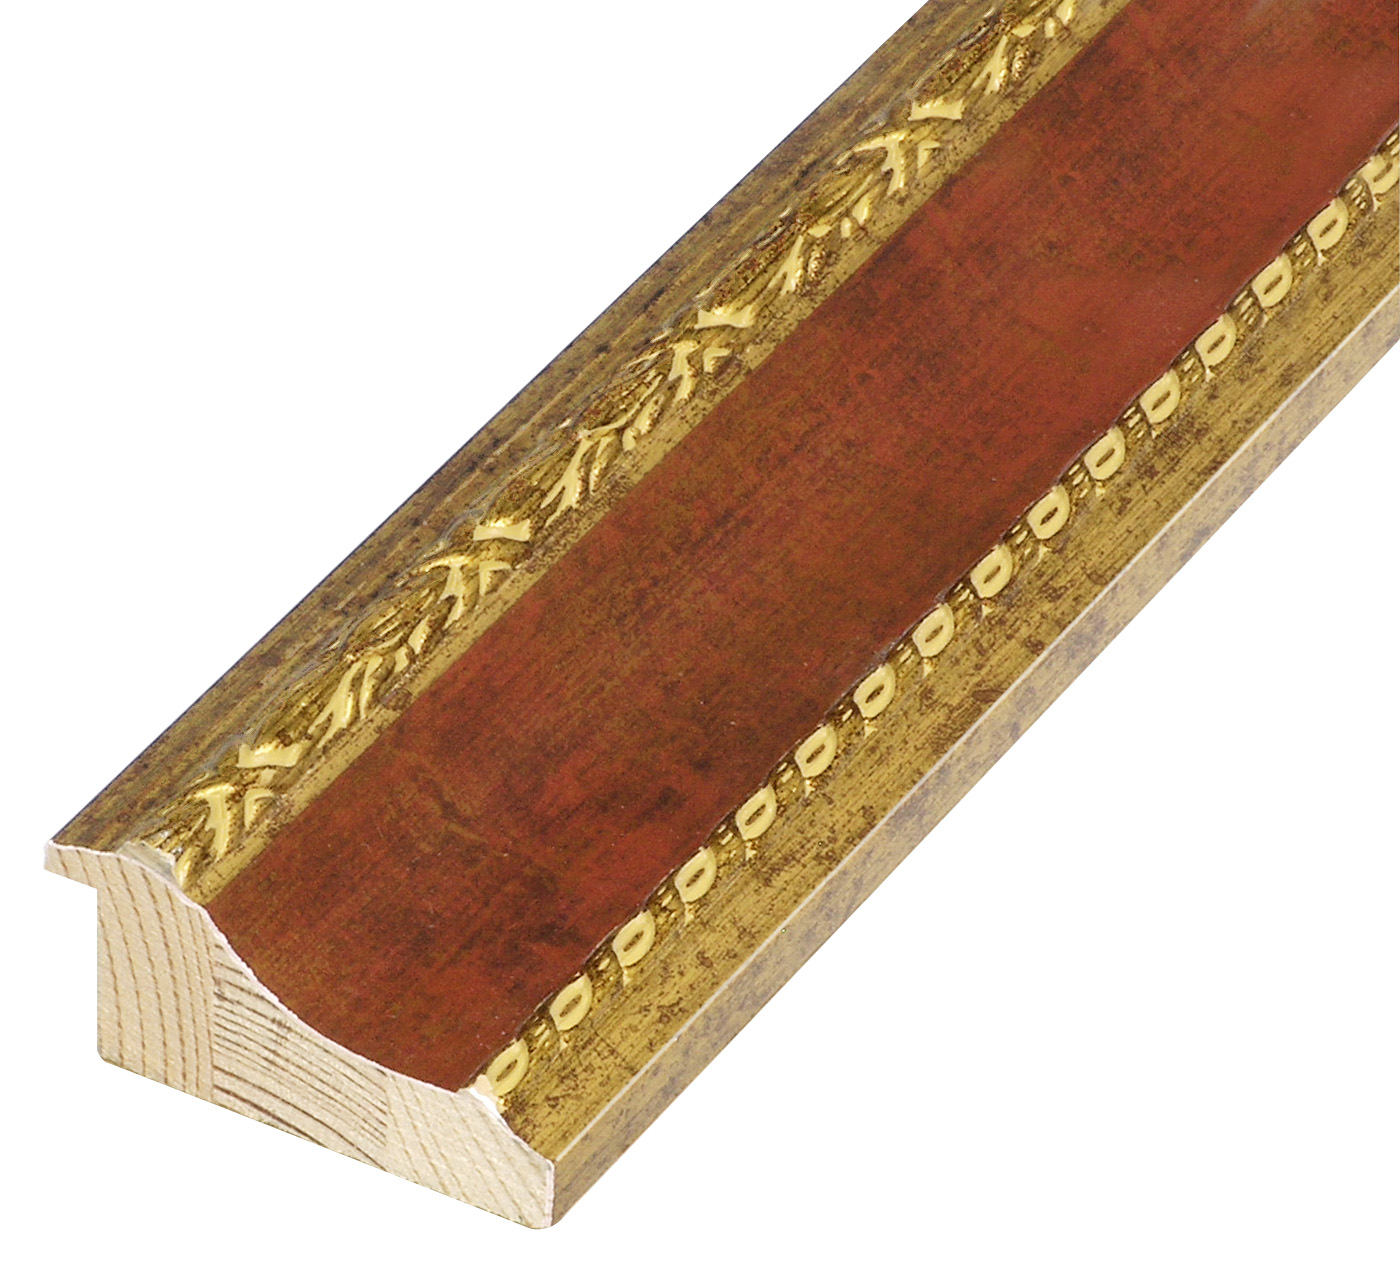 Moulding finger joint pine, width 68mm - gold, red band, decorations